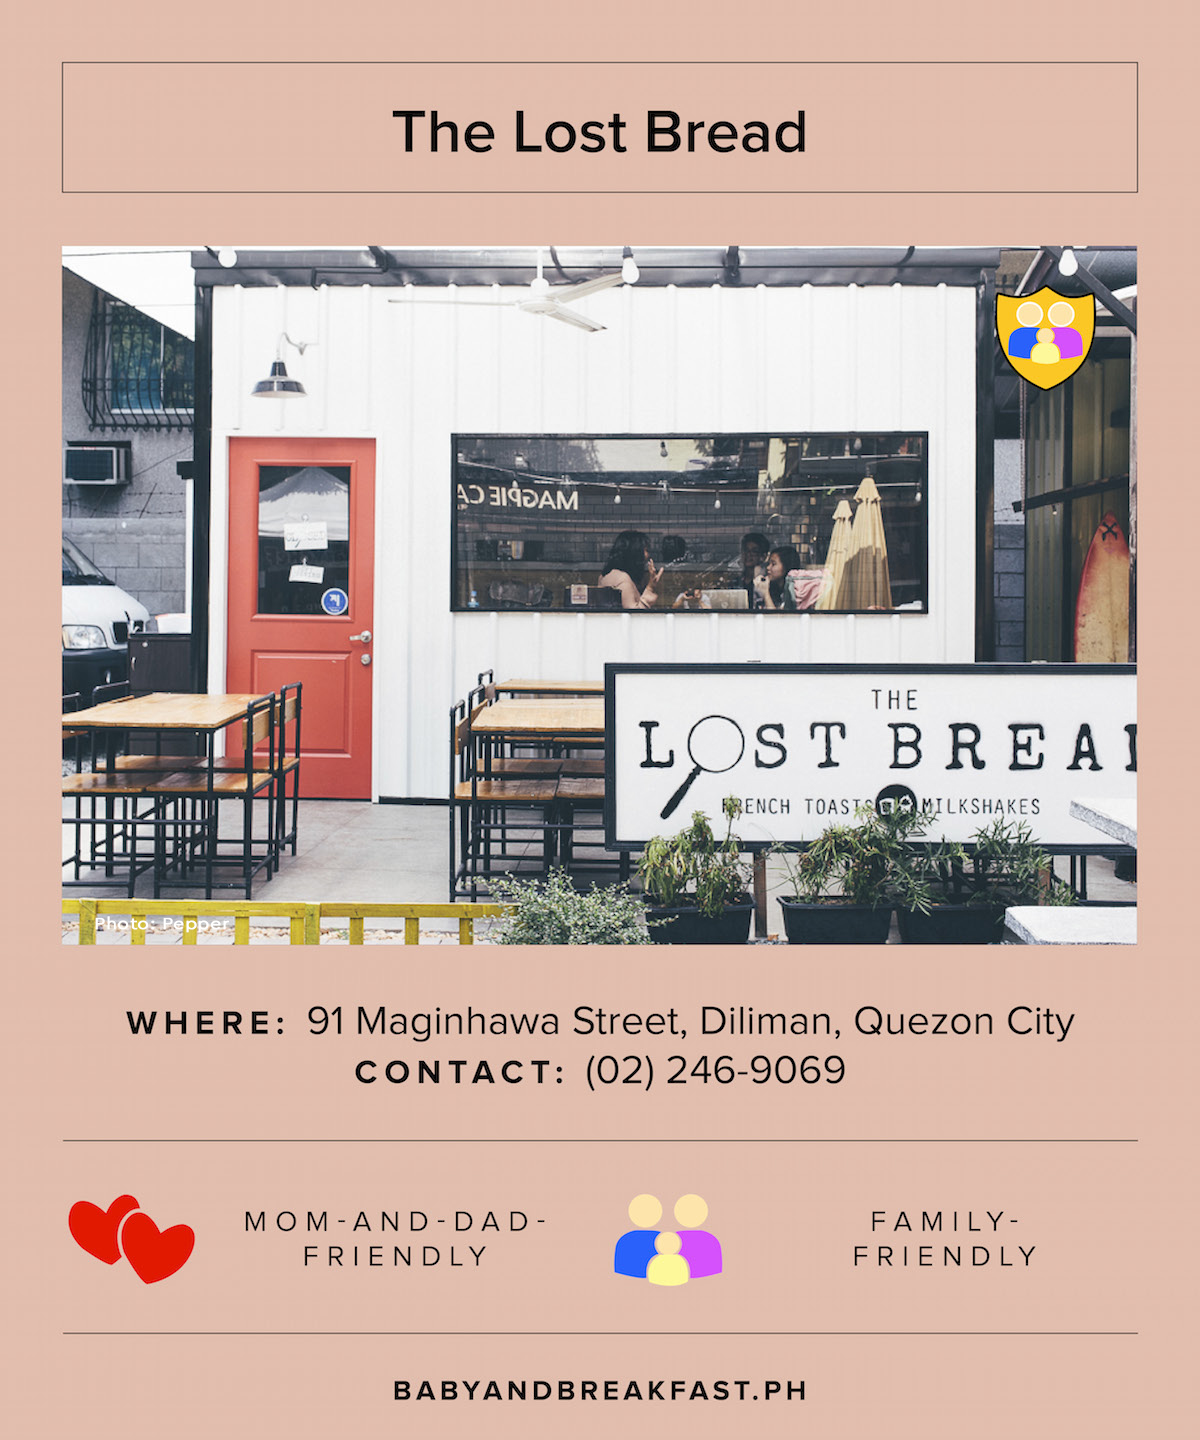 The Lost Bread Where: 91 Maginhawa Street, Diliman, Quezon City Contact: (02) 246-9069 Family-Friendly Photo: Pepper